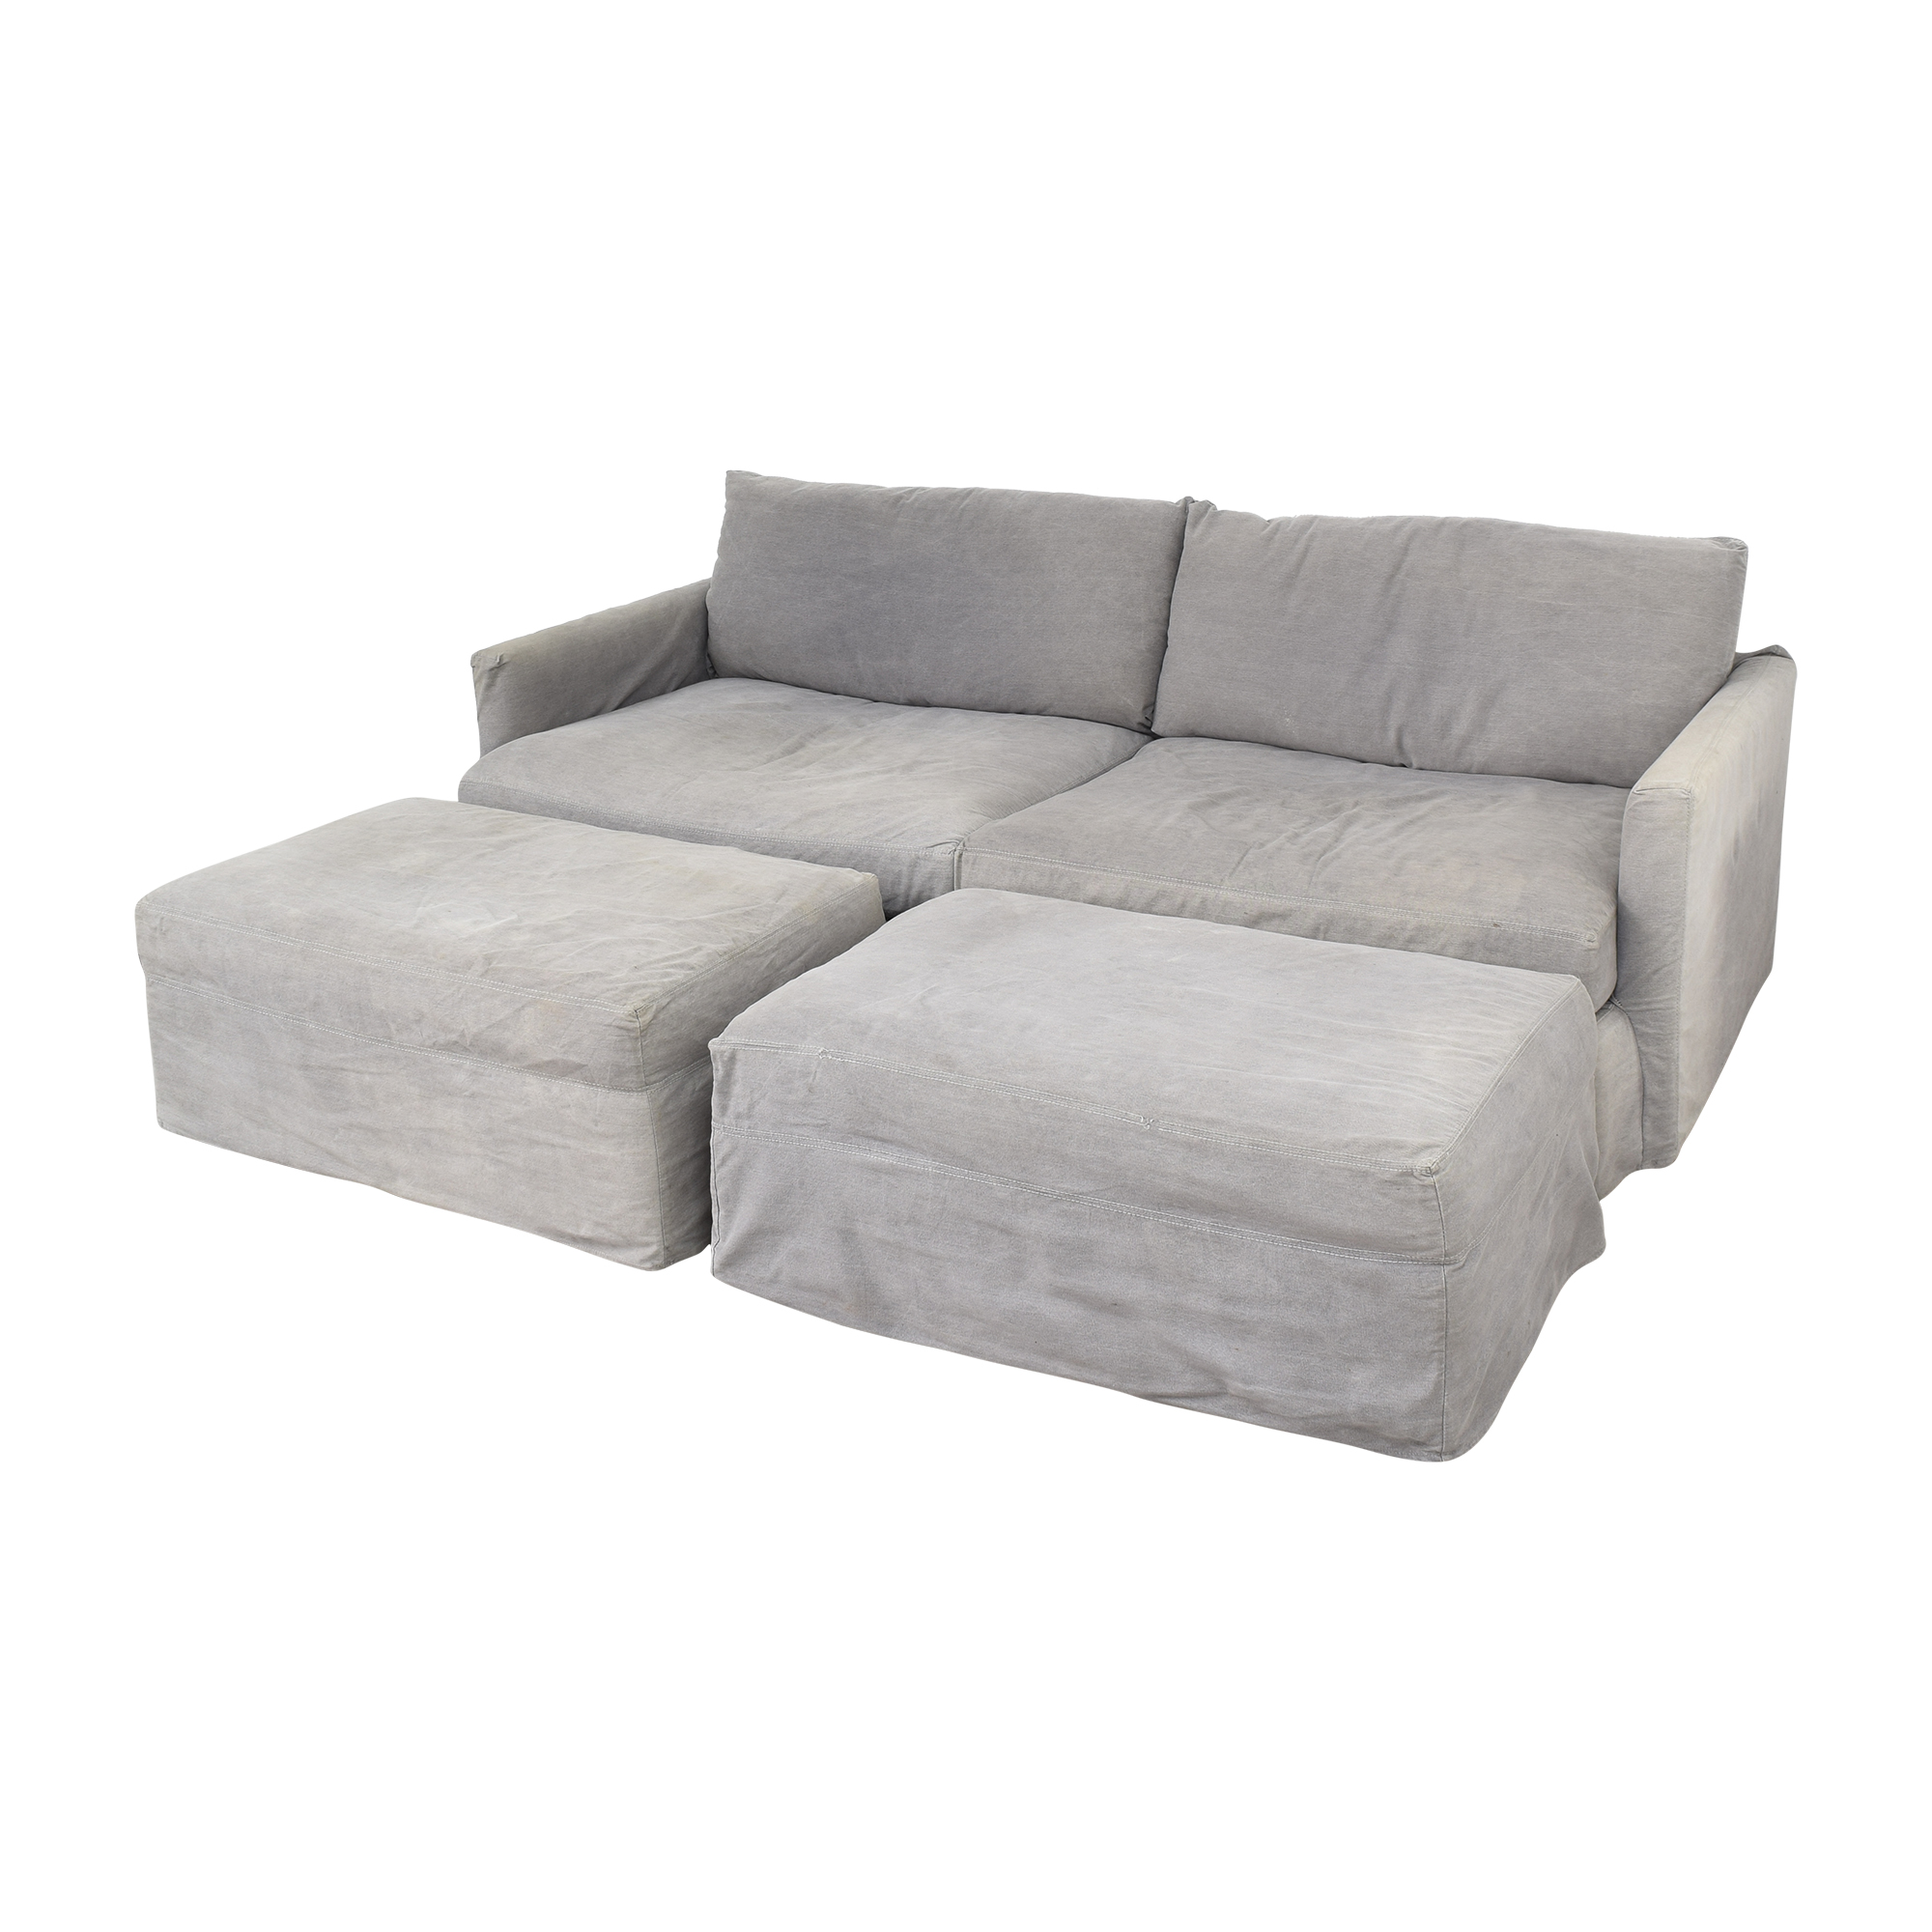 Crate & Barrel Crate & Barrel Lounge II Sofa with Two Ottomans on Casters coupon